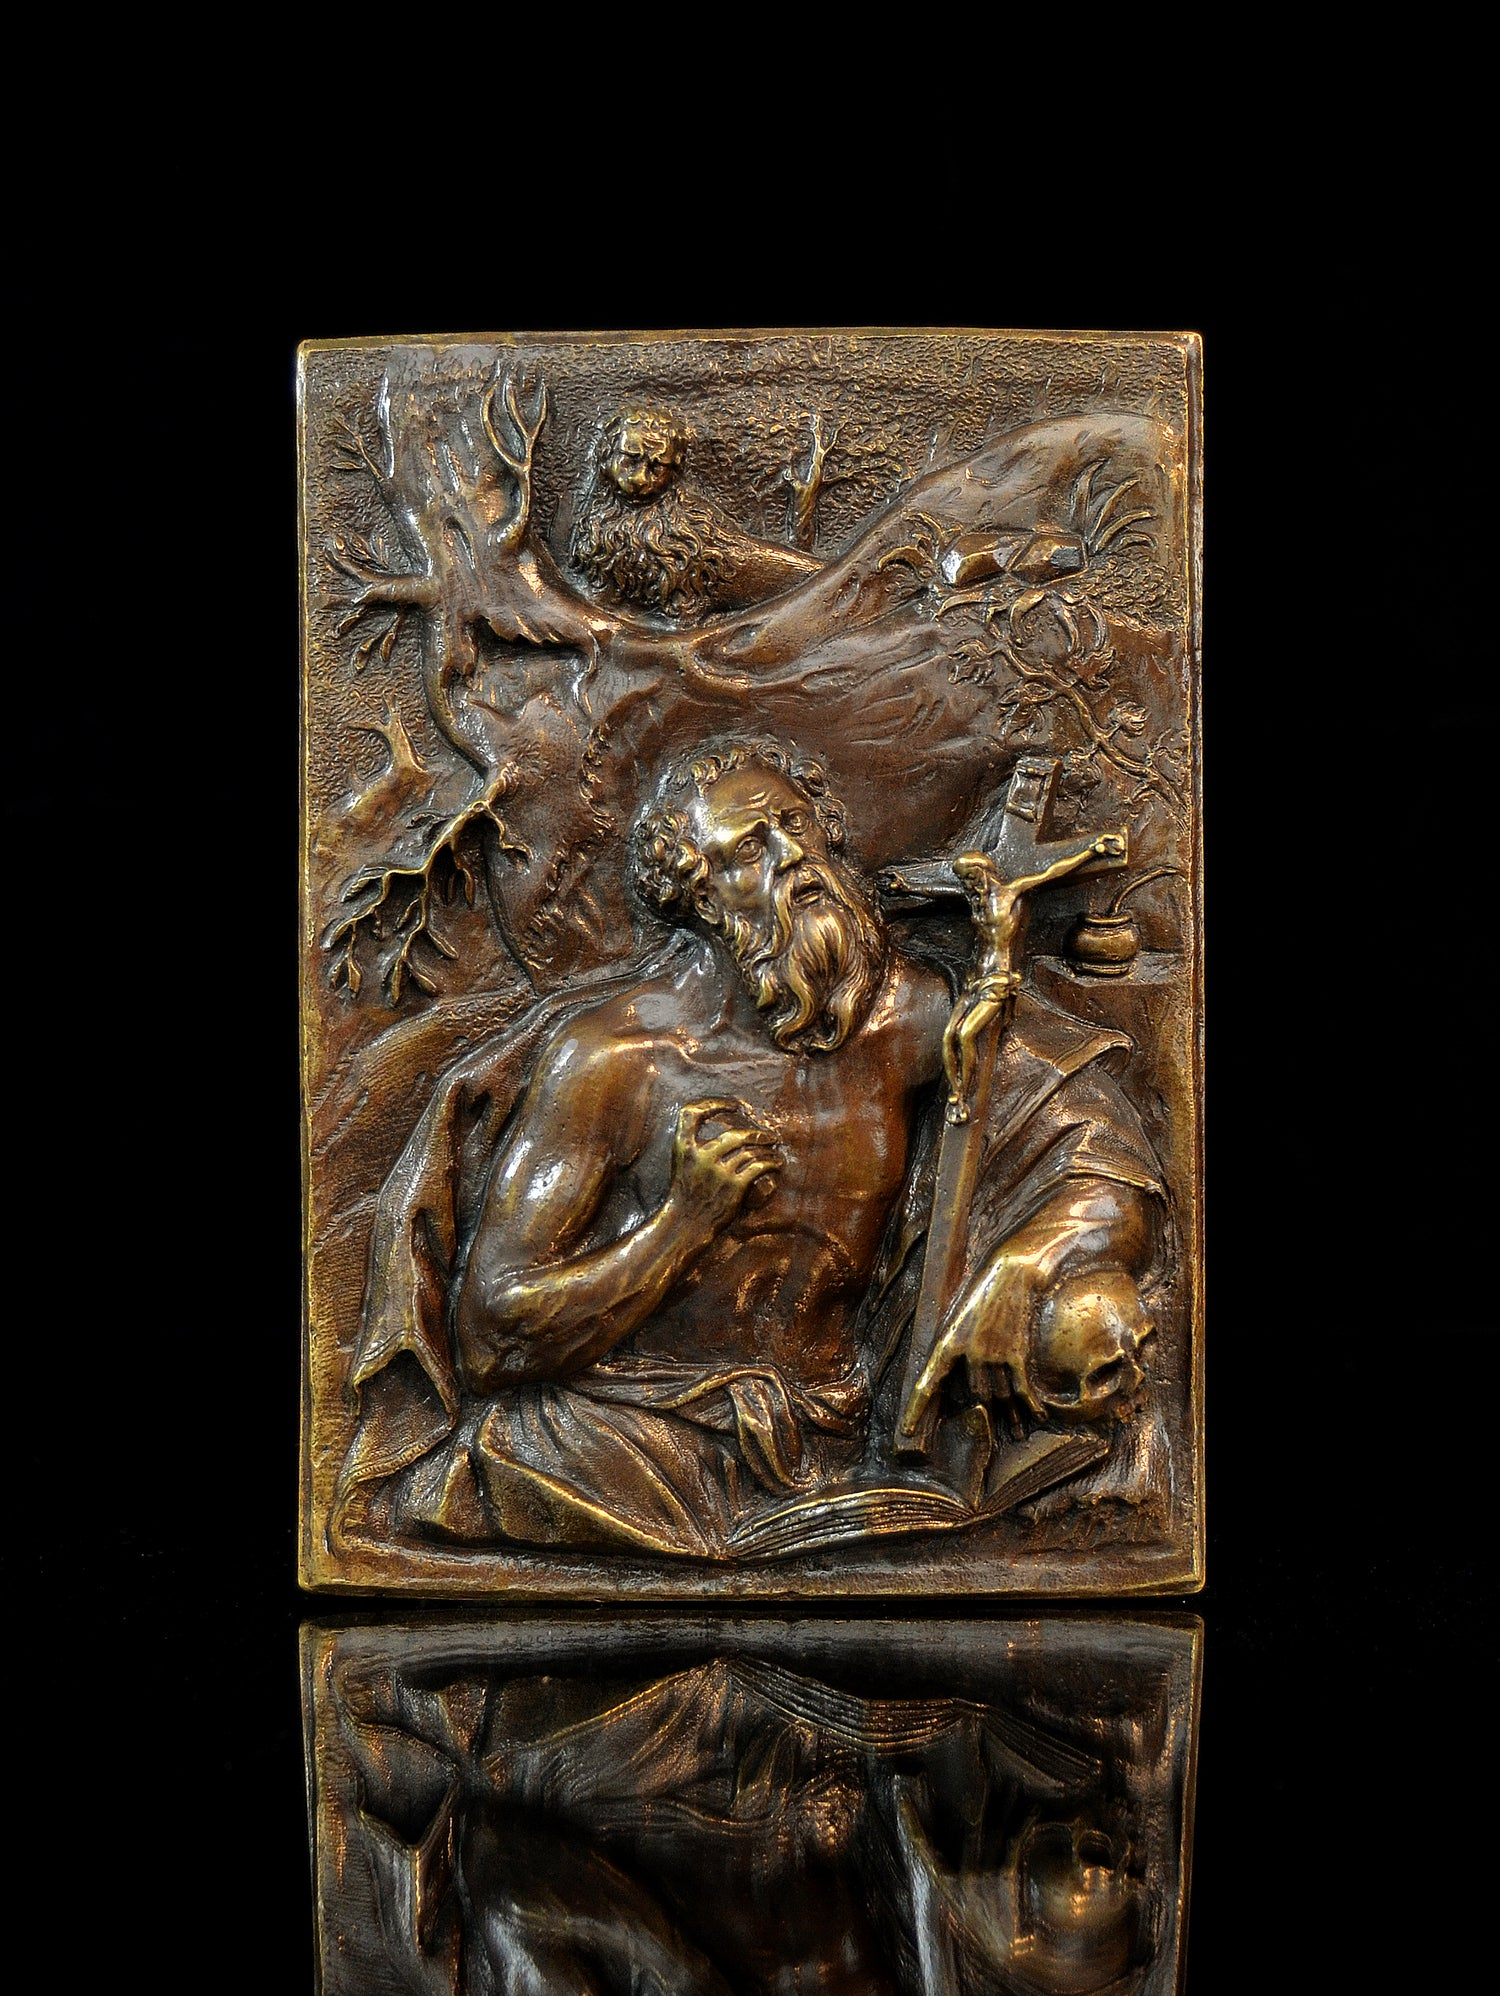 Image of High relief bronze plaquette of St. Jerome from the Circle of Hubert Gerhard